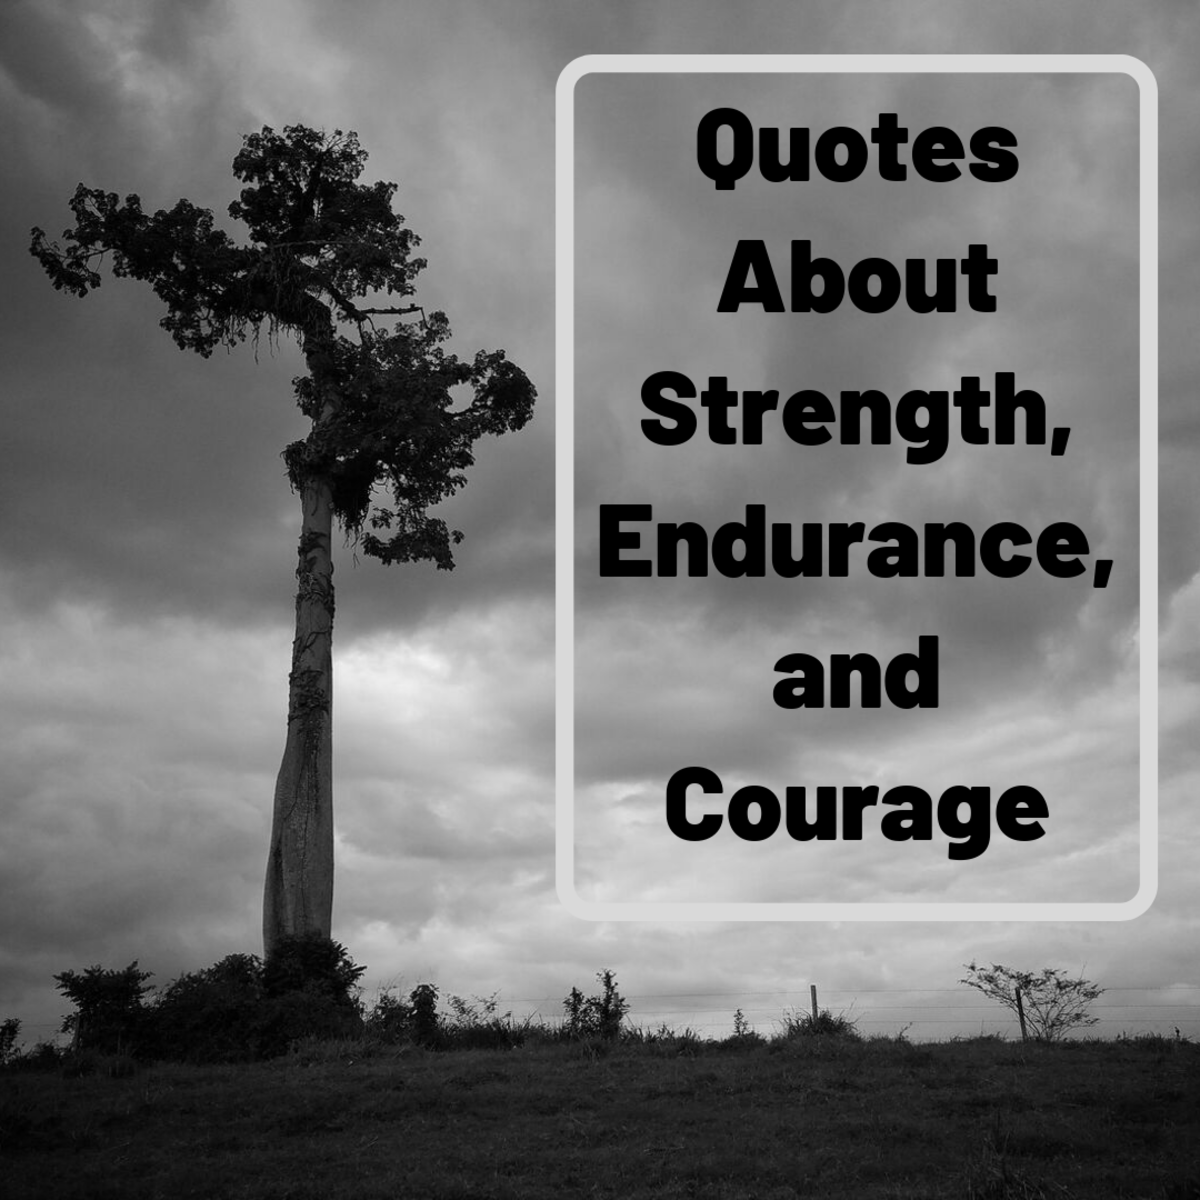 Discover some inspirational and motivational quotes related to strength, perseverance, toughness, and courage.